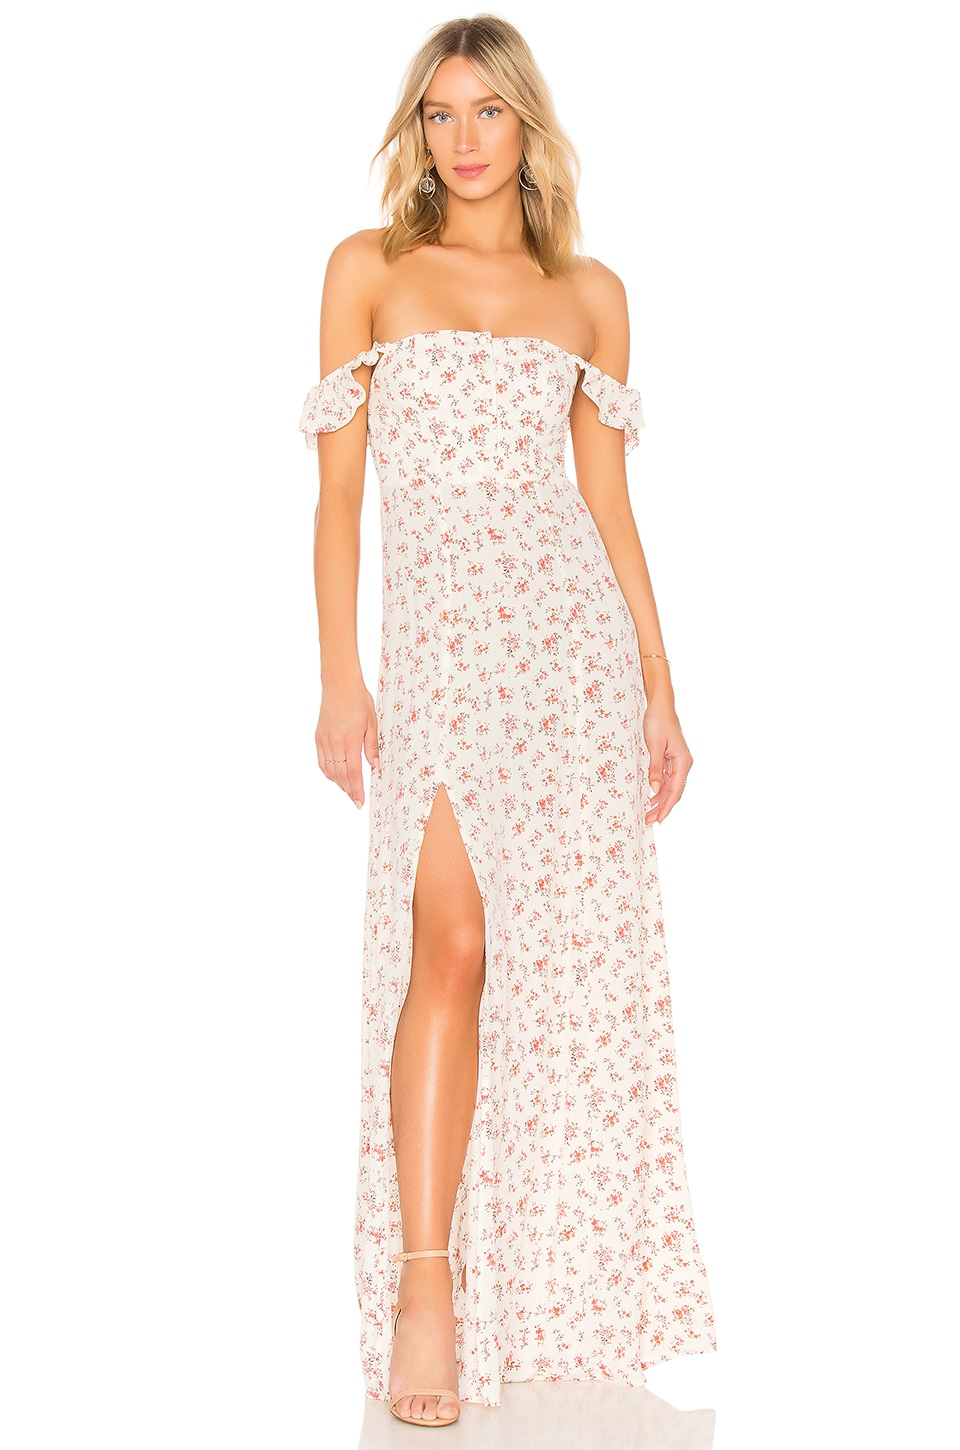 FLYNN SKYE Bardot Maxi Dress in Countryside Blooms